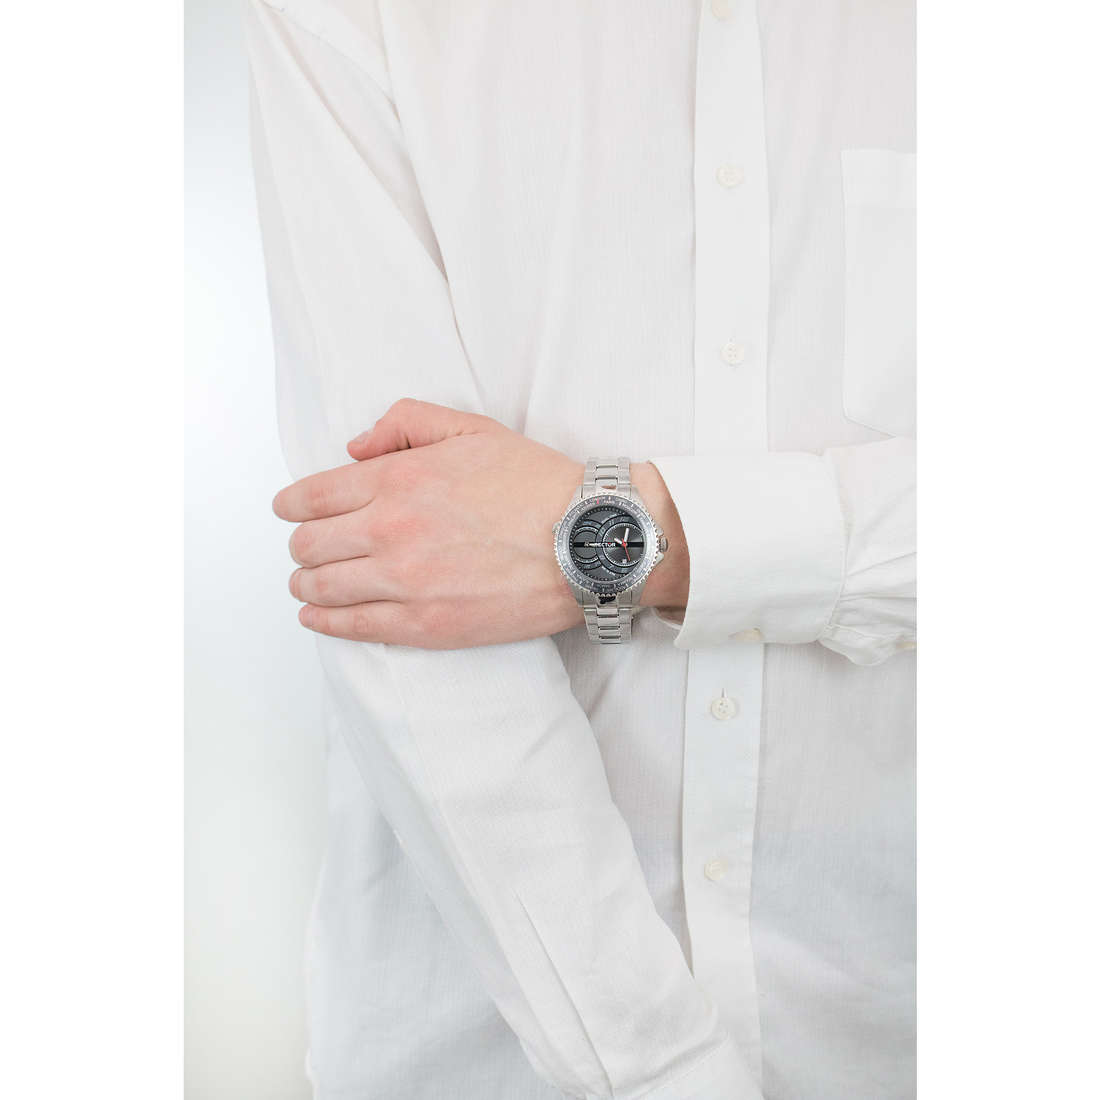 Sector dual time 235 uomo R3253161004 indosso